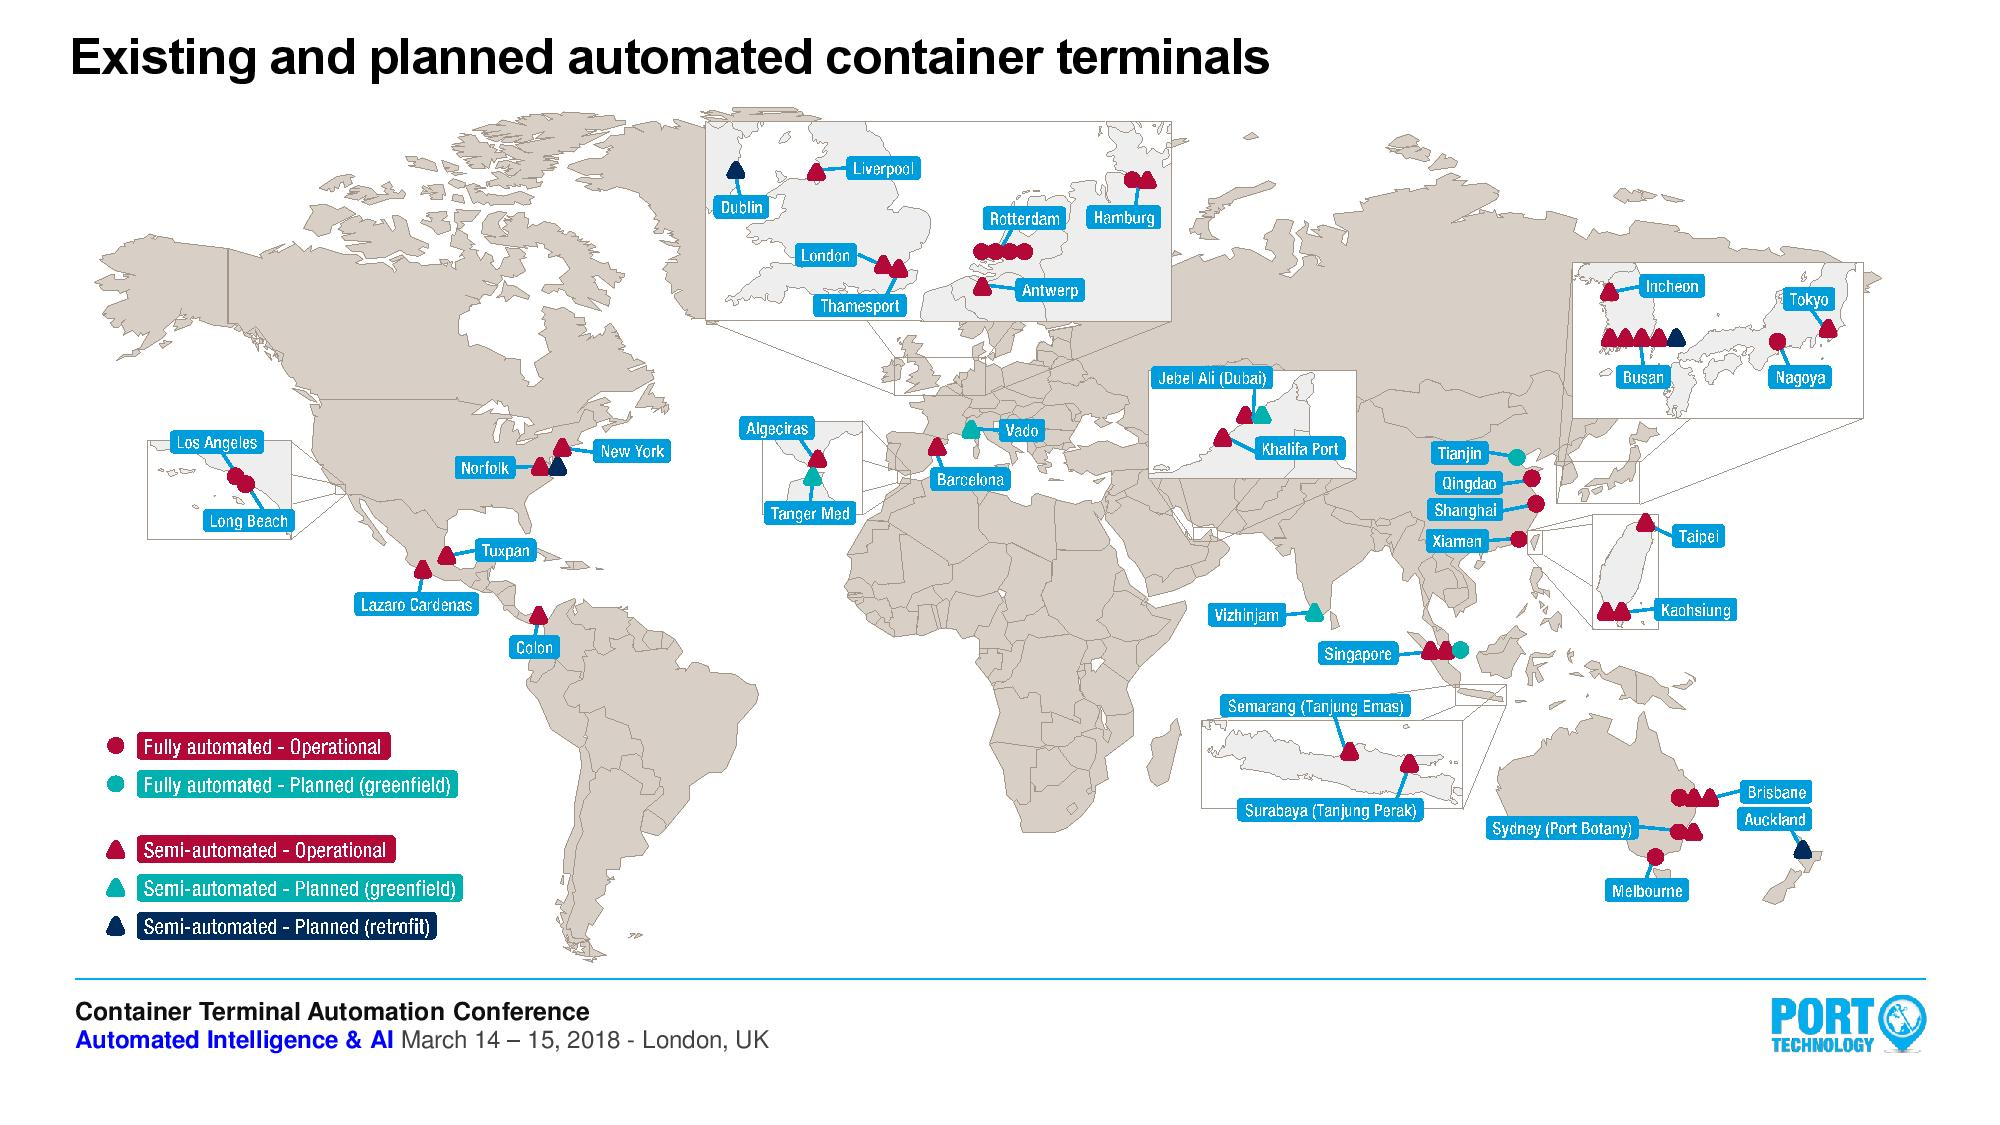 Existing and planned automated terminals in the world